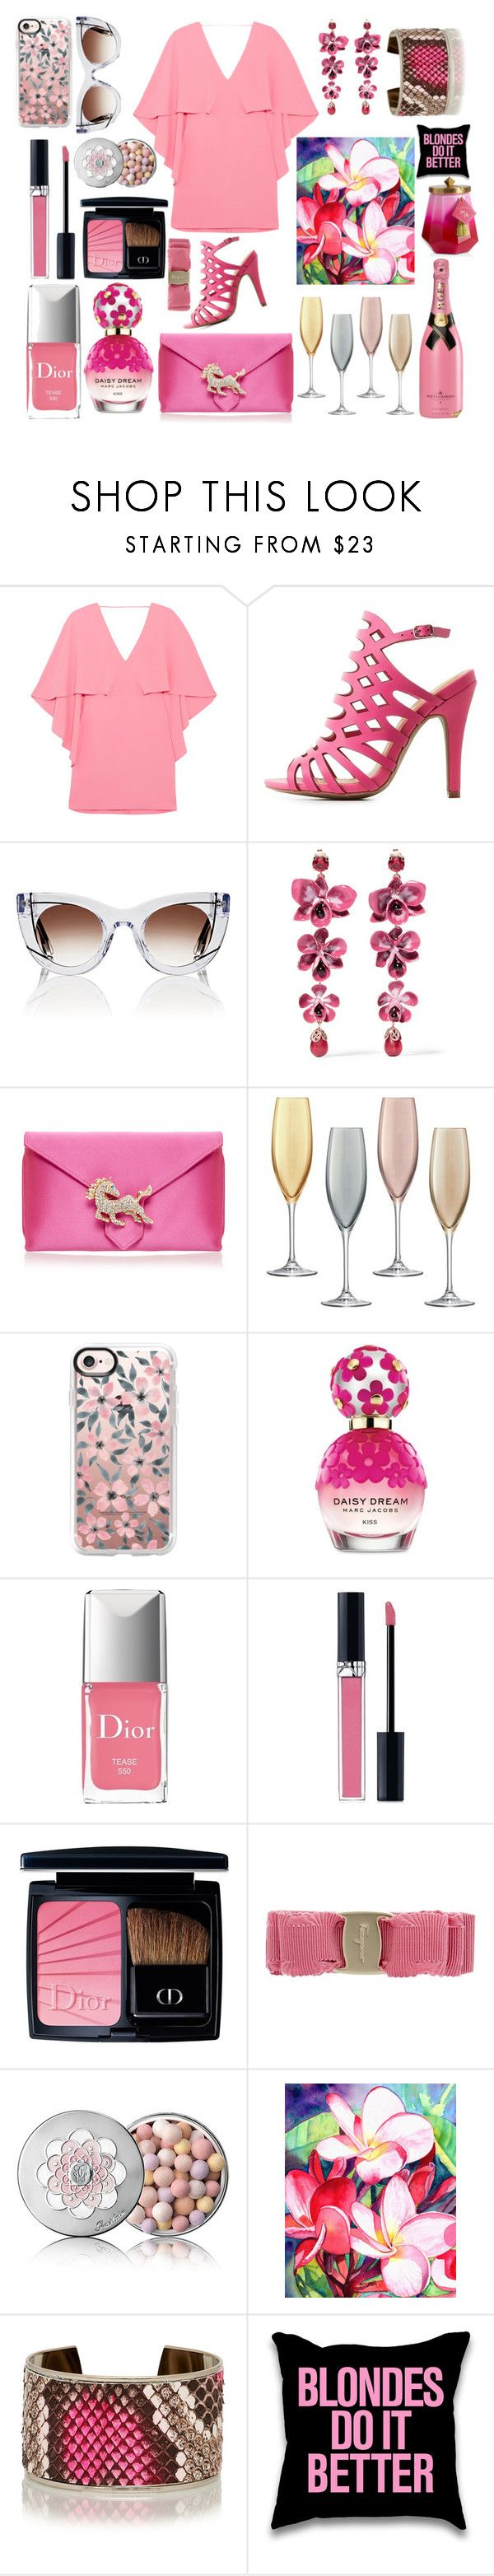 """""""Pinks are a no - brainier!!"""" by pulseofthematter ❤ liked on Polyvore featuring Halston Heritage, Charlotte Russe, Thierry Lasry, Etro, Wilbur & Gussie, LSA International, Casetify, Marc Jacobs, Christian Dior and Salvatore Ferragamo"""